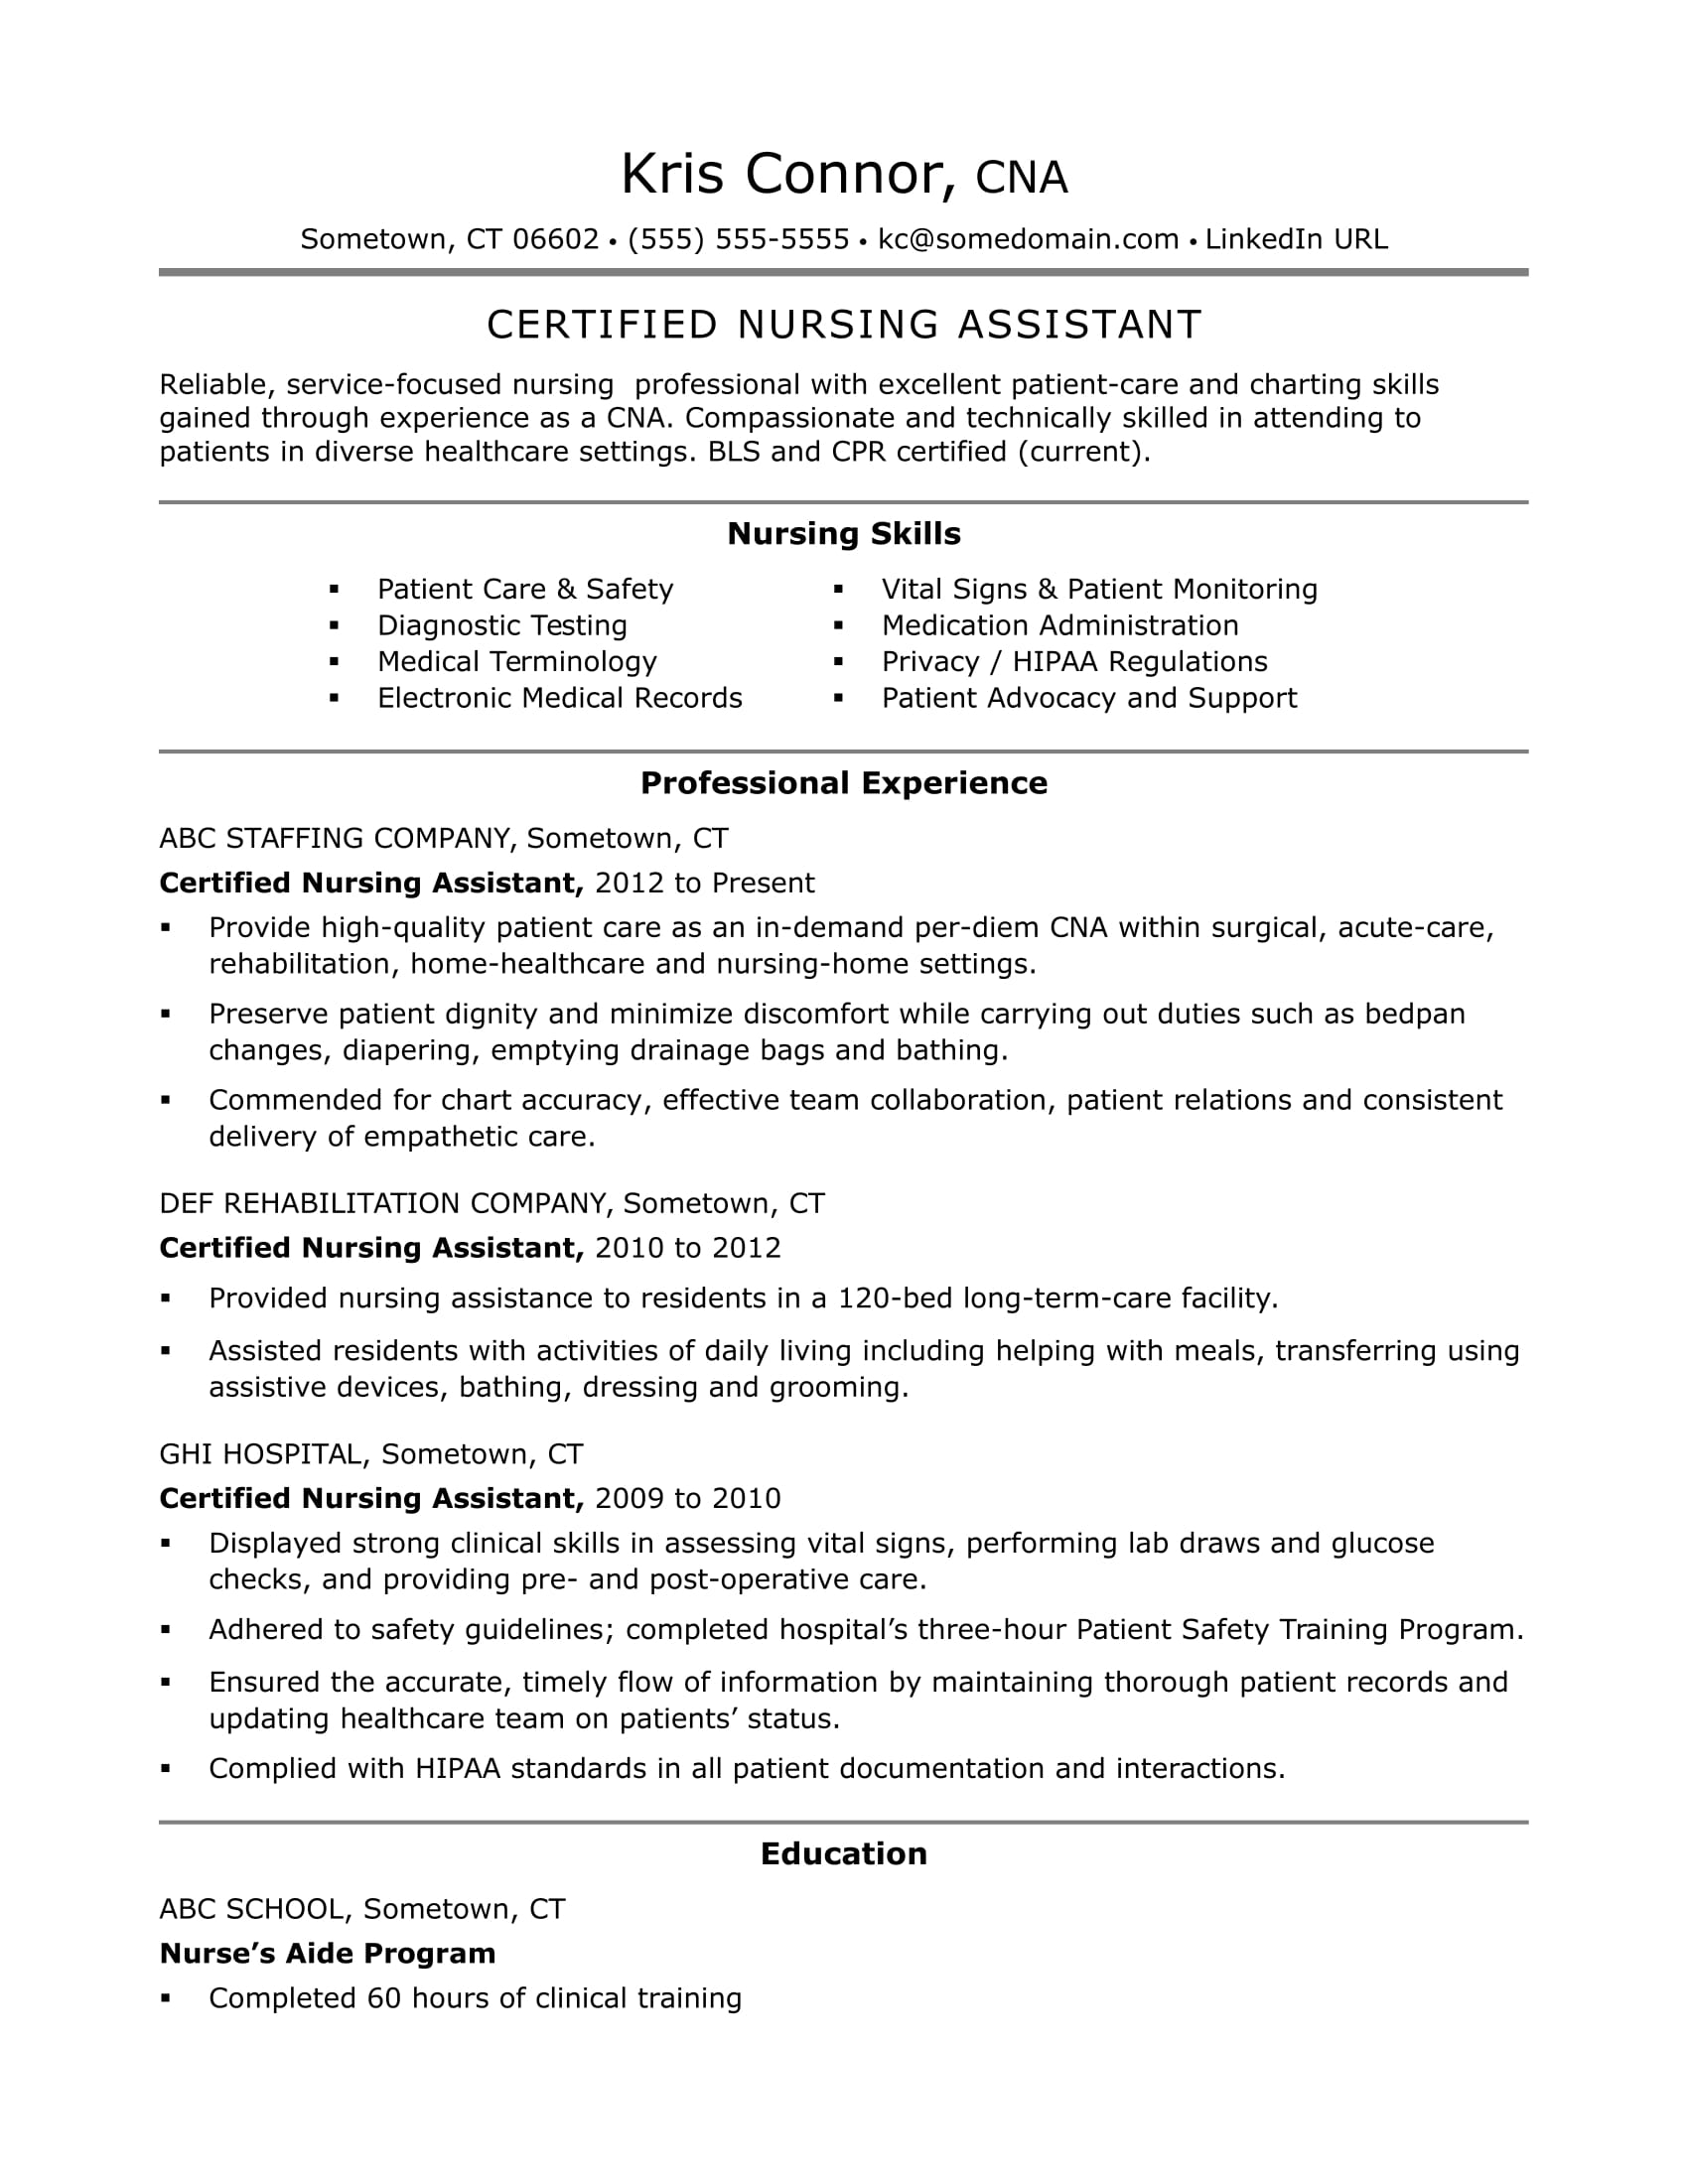 Nursing Assistant Resume Templates